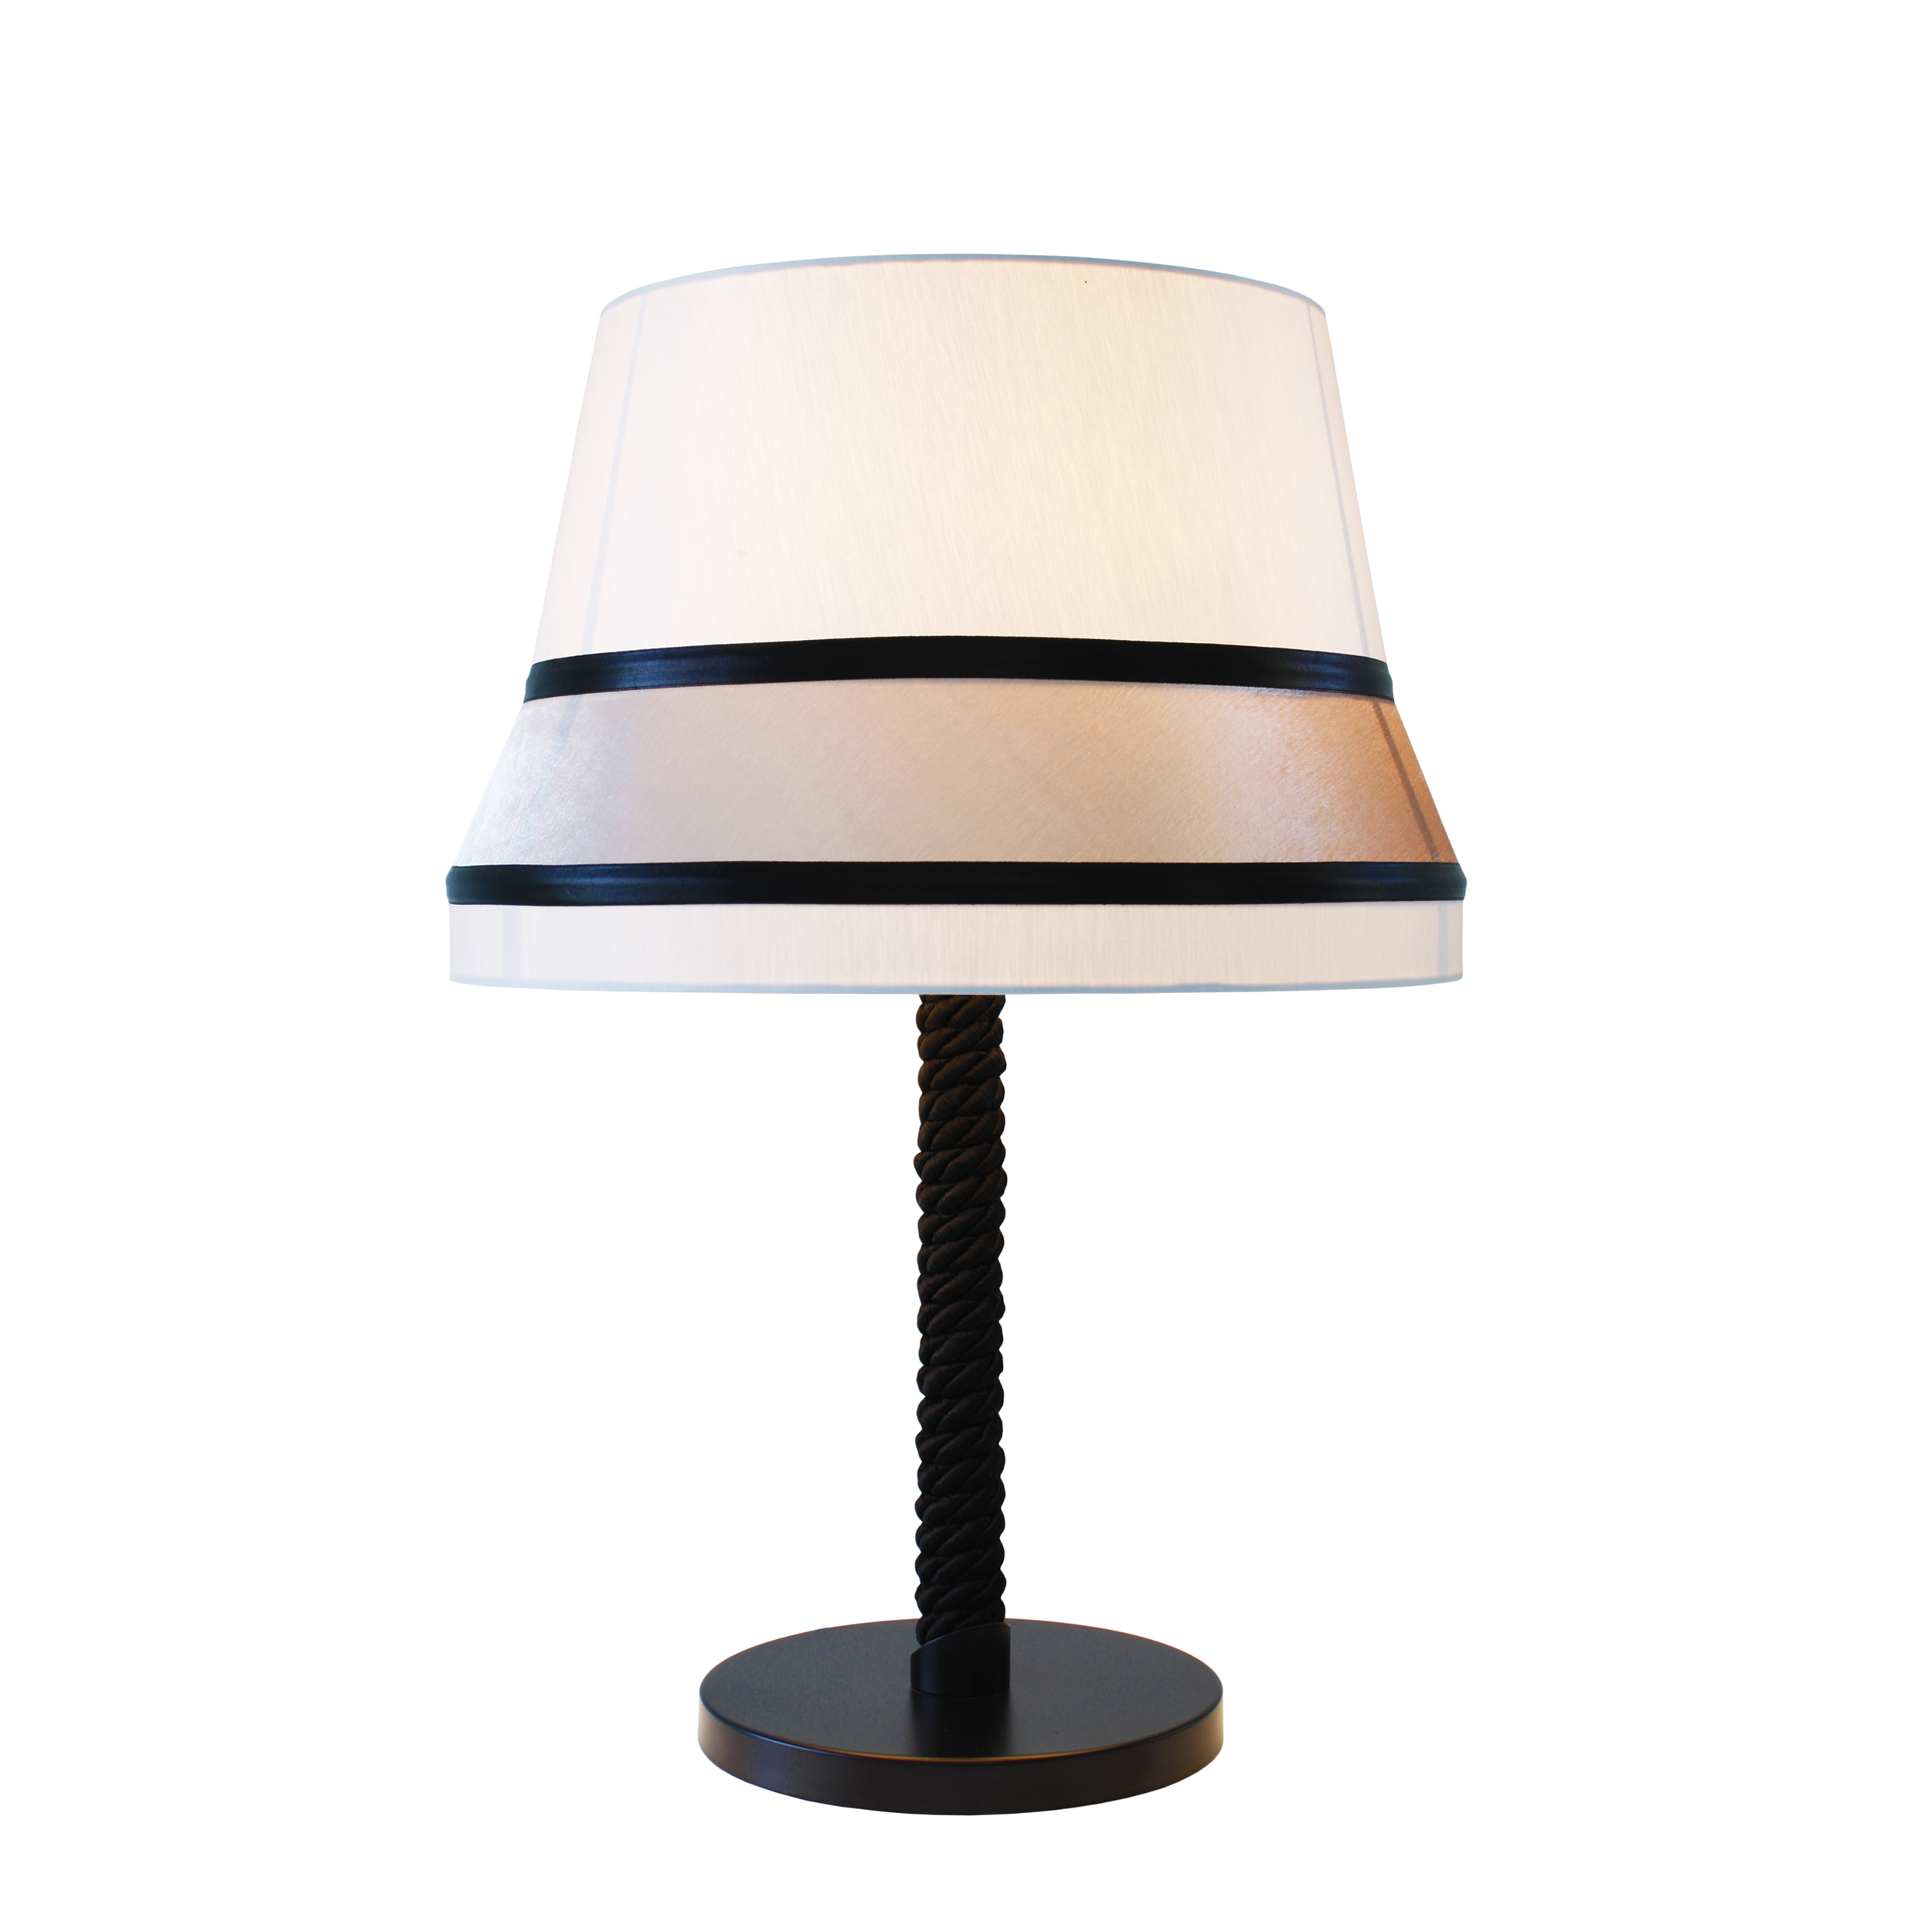 Contardi Audrey Medium Table Lamp Black Silk